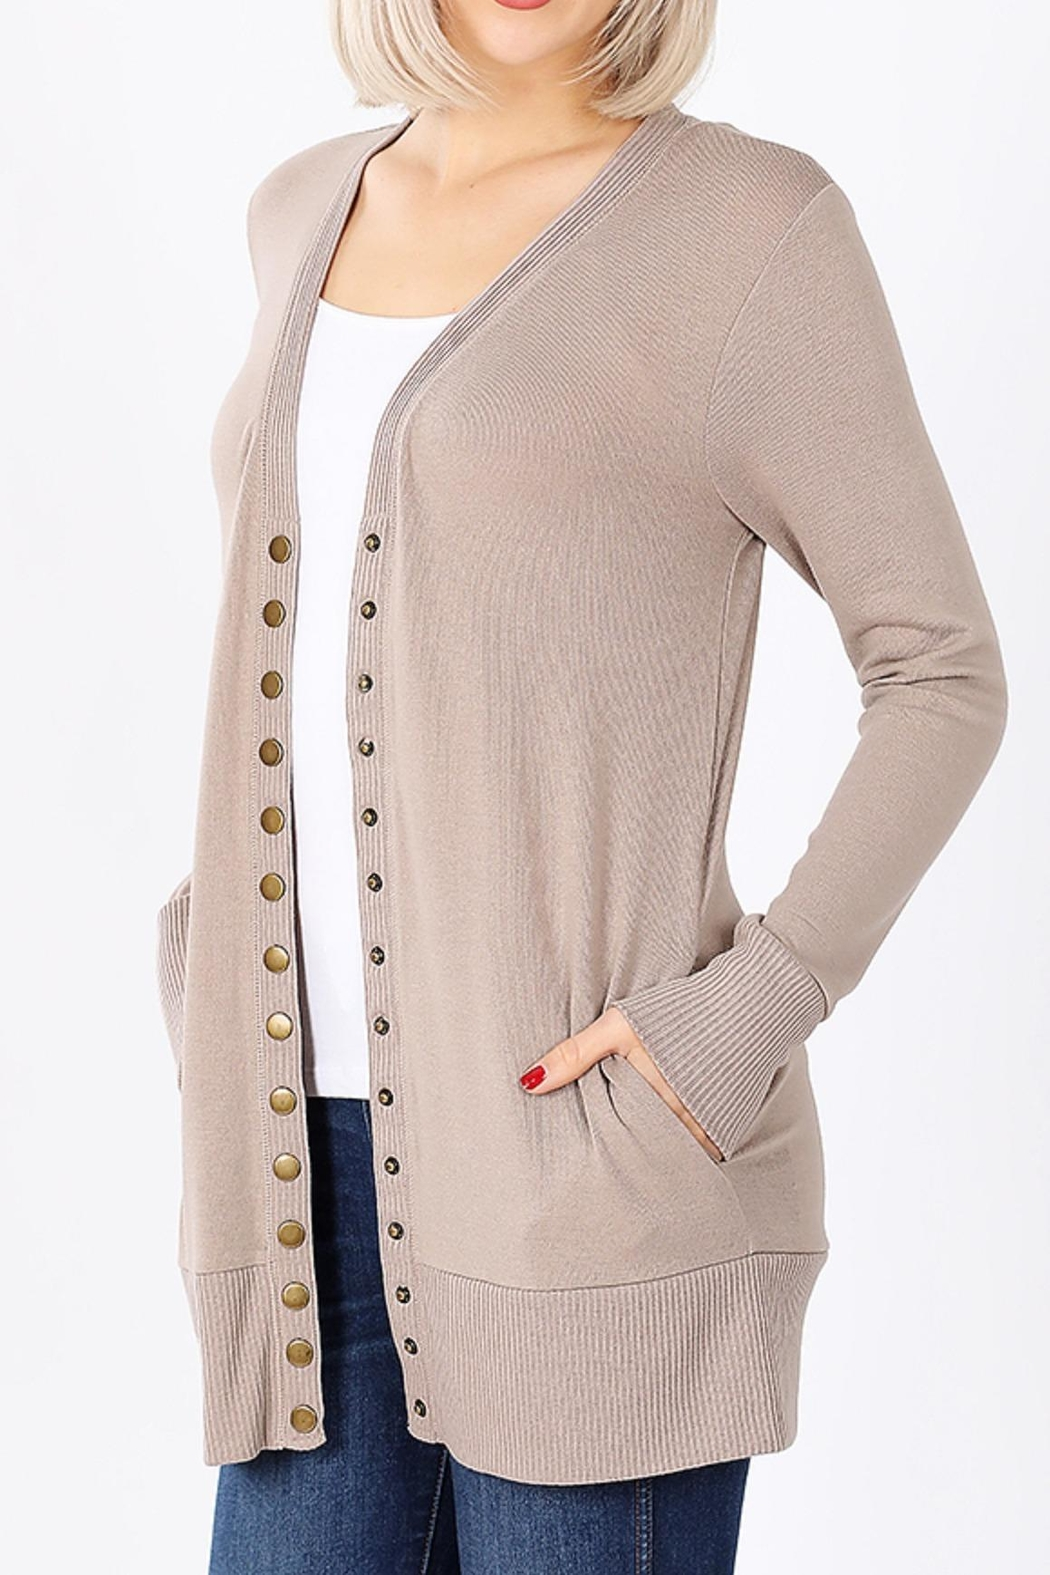 Zenana Outfitters Snap-Button Sweater Cardigan - Back Cropped Image